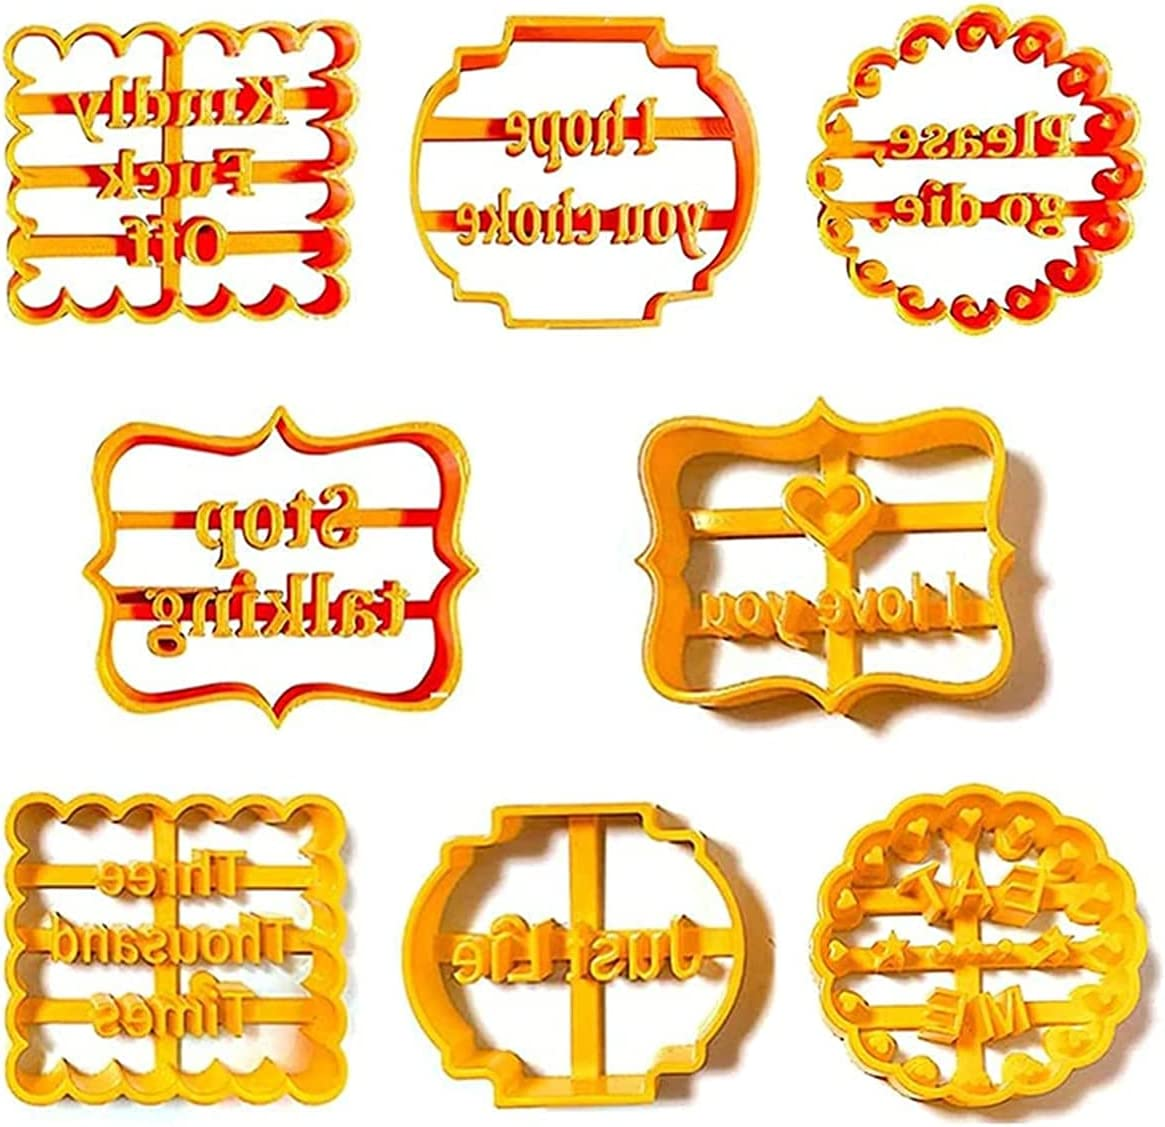 8 Pcs Funny Cookie Cutters Molds with Wish Words,Biscuit Mold for Kitchen Baking DIY,Cookie Molds with with Rude Sayings Words (8 Pcs)